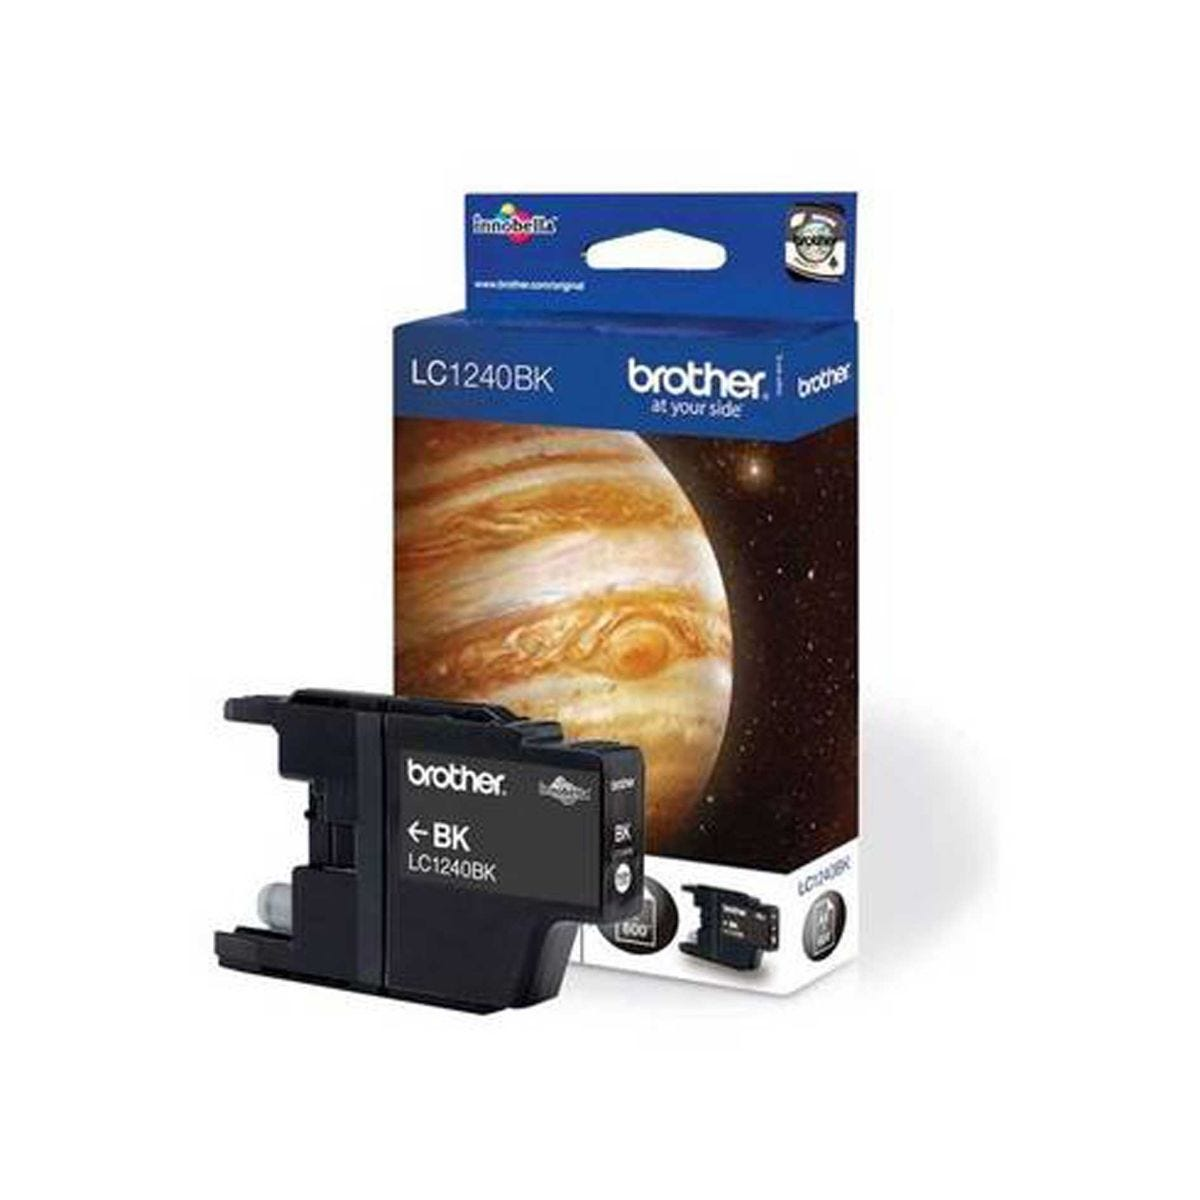 Image of Brother LC1240BK Ink Cartridge, Black